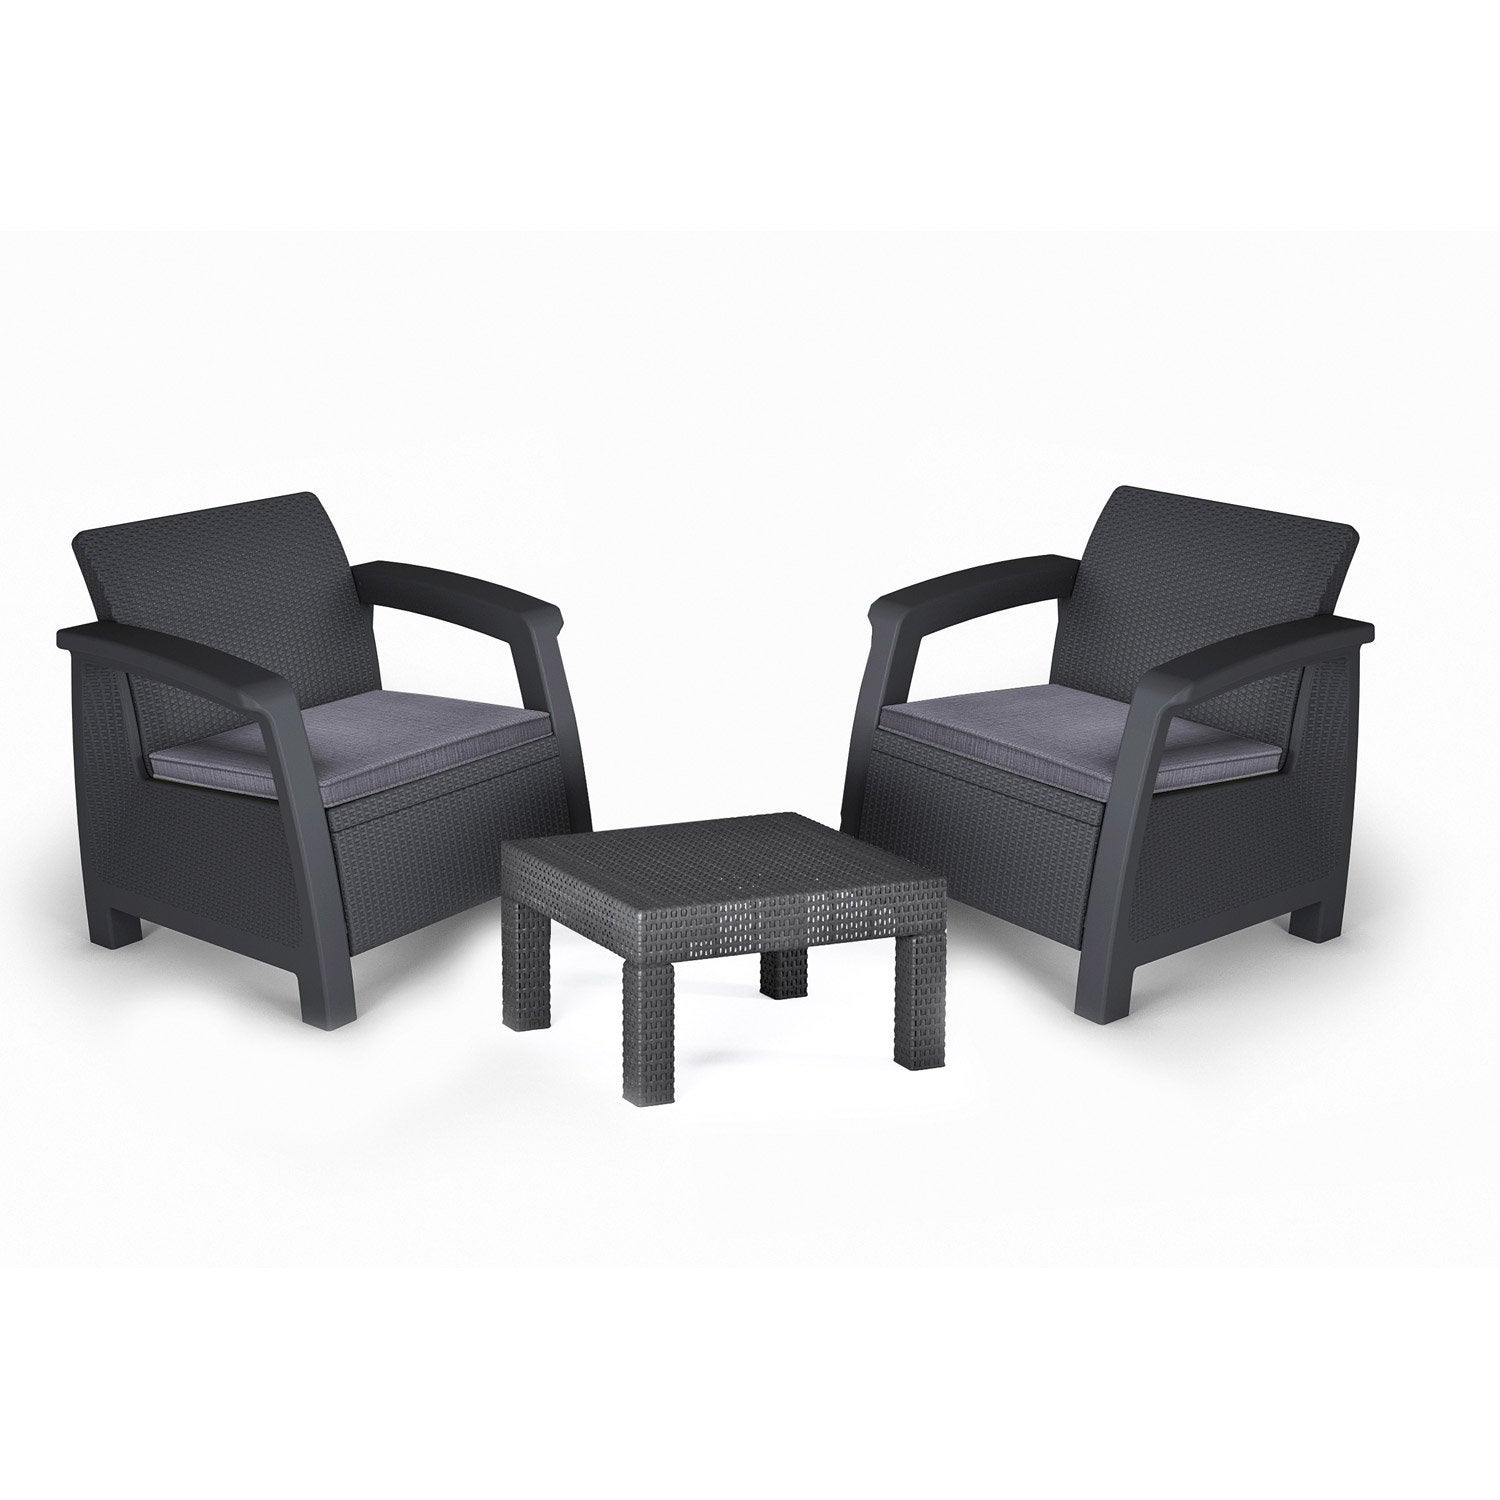 salon de jardin bahamas r sine inject e anthracite table 2. Black Bedroom Furniture Sets. Home Design Ideas